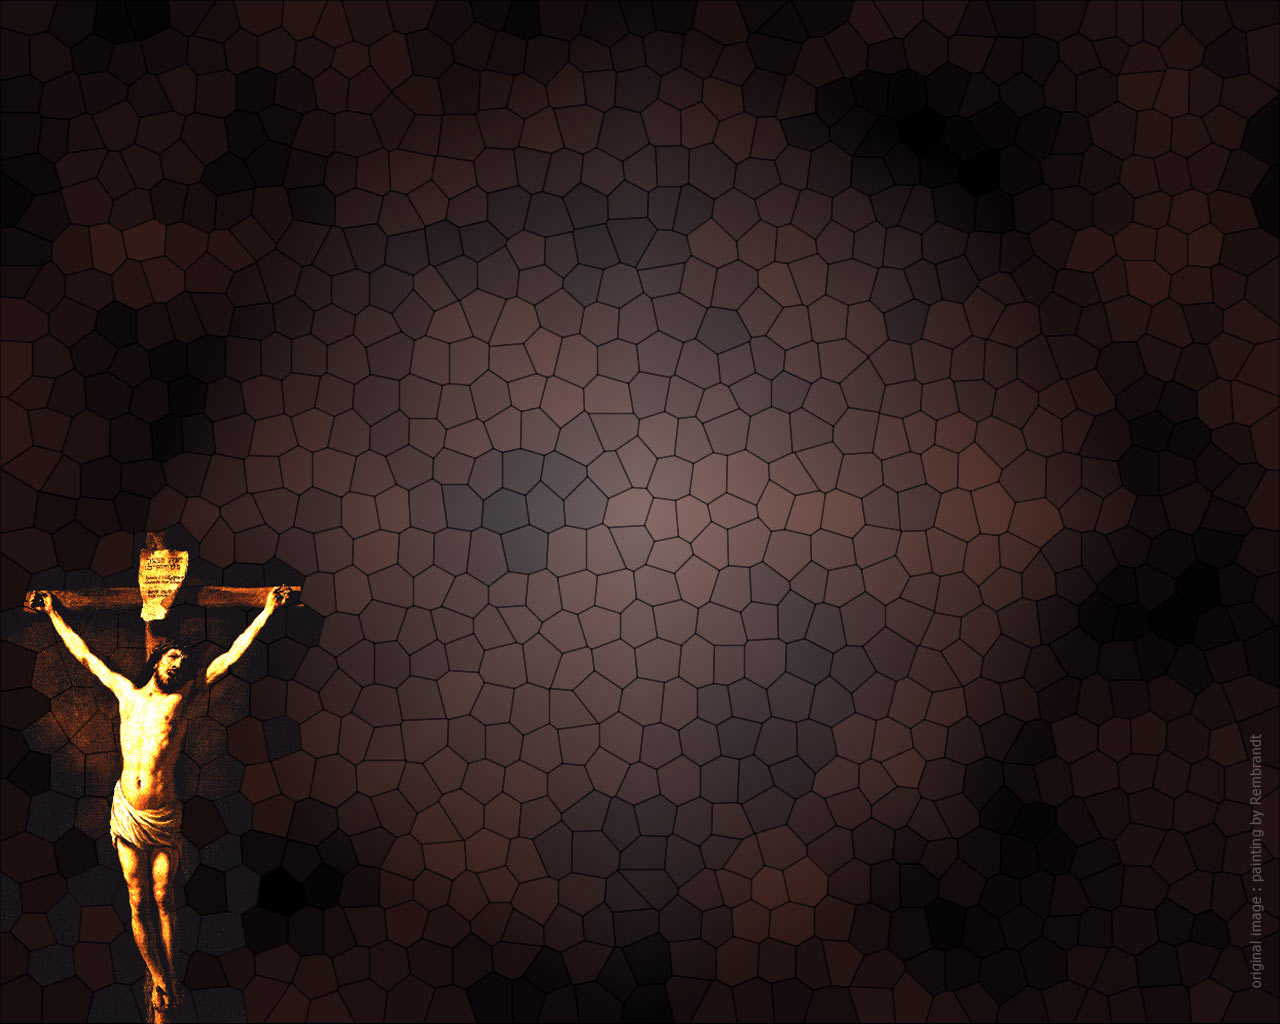 Free jesus christ pictures and christian photos may 2010 jesus christ on cross at crucifixion power point template background toneelgroepblik Gallery